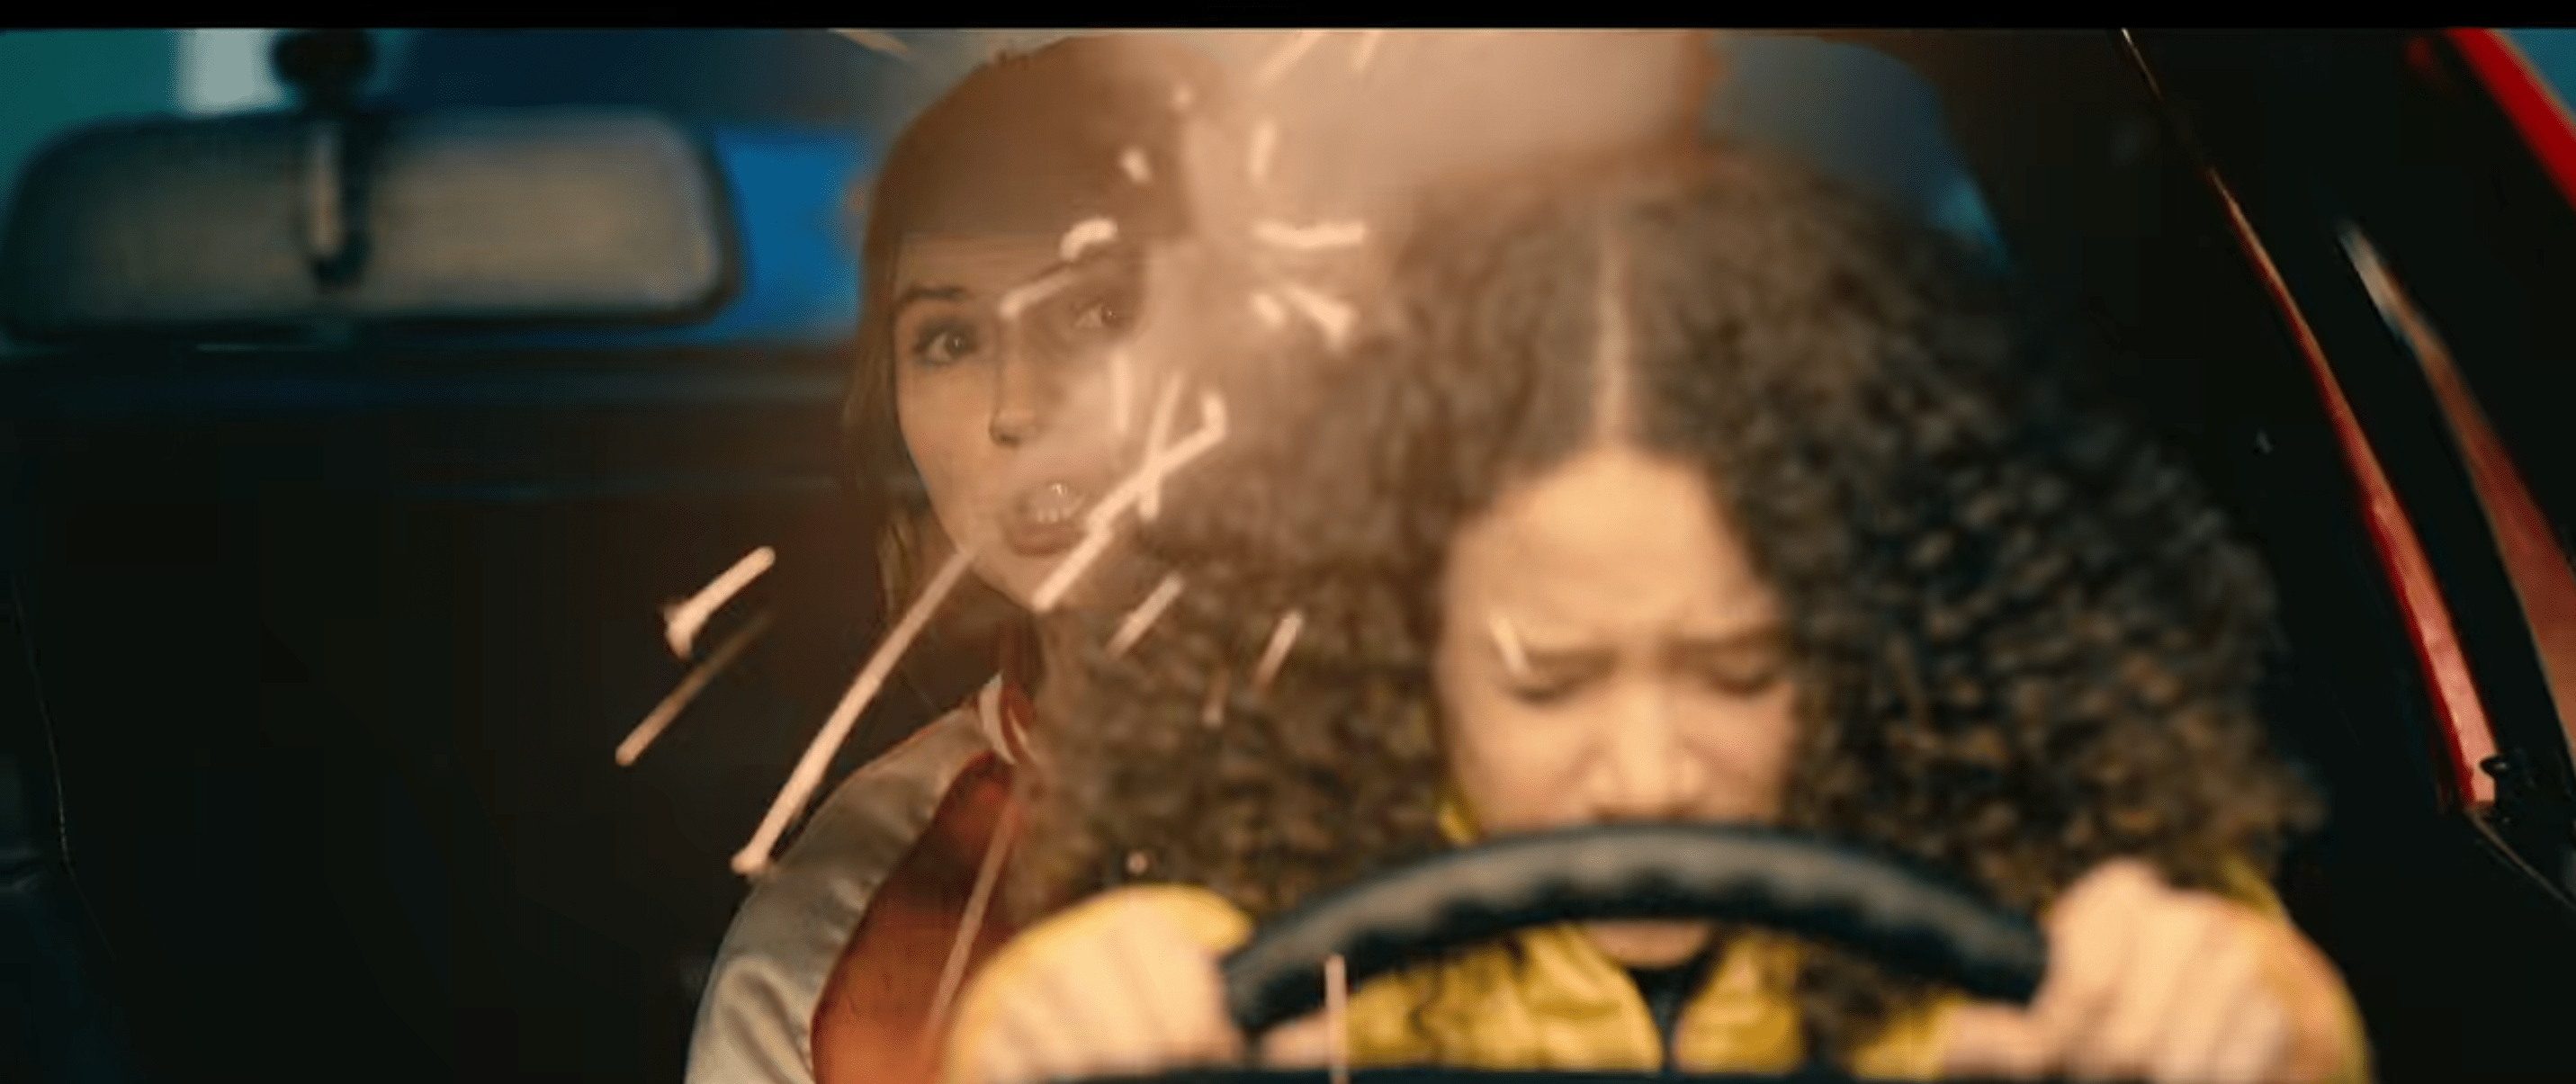 Emily holding the steering wheel while closing her eyes and tilting her head down. She is seated on Sam's lap who leans around her to see. Sam is mid-speech. The reflection of sparks is visible on their windshield.